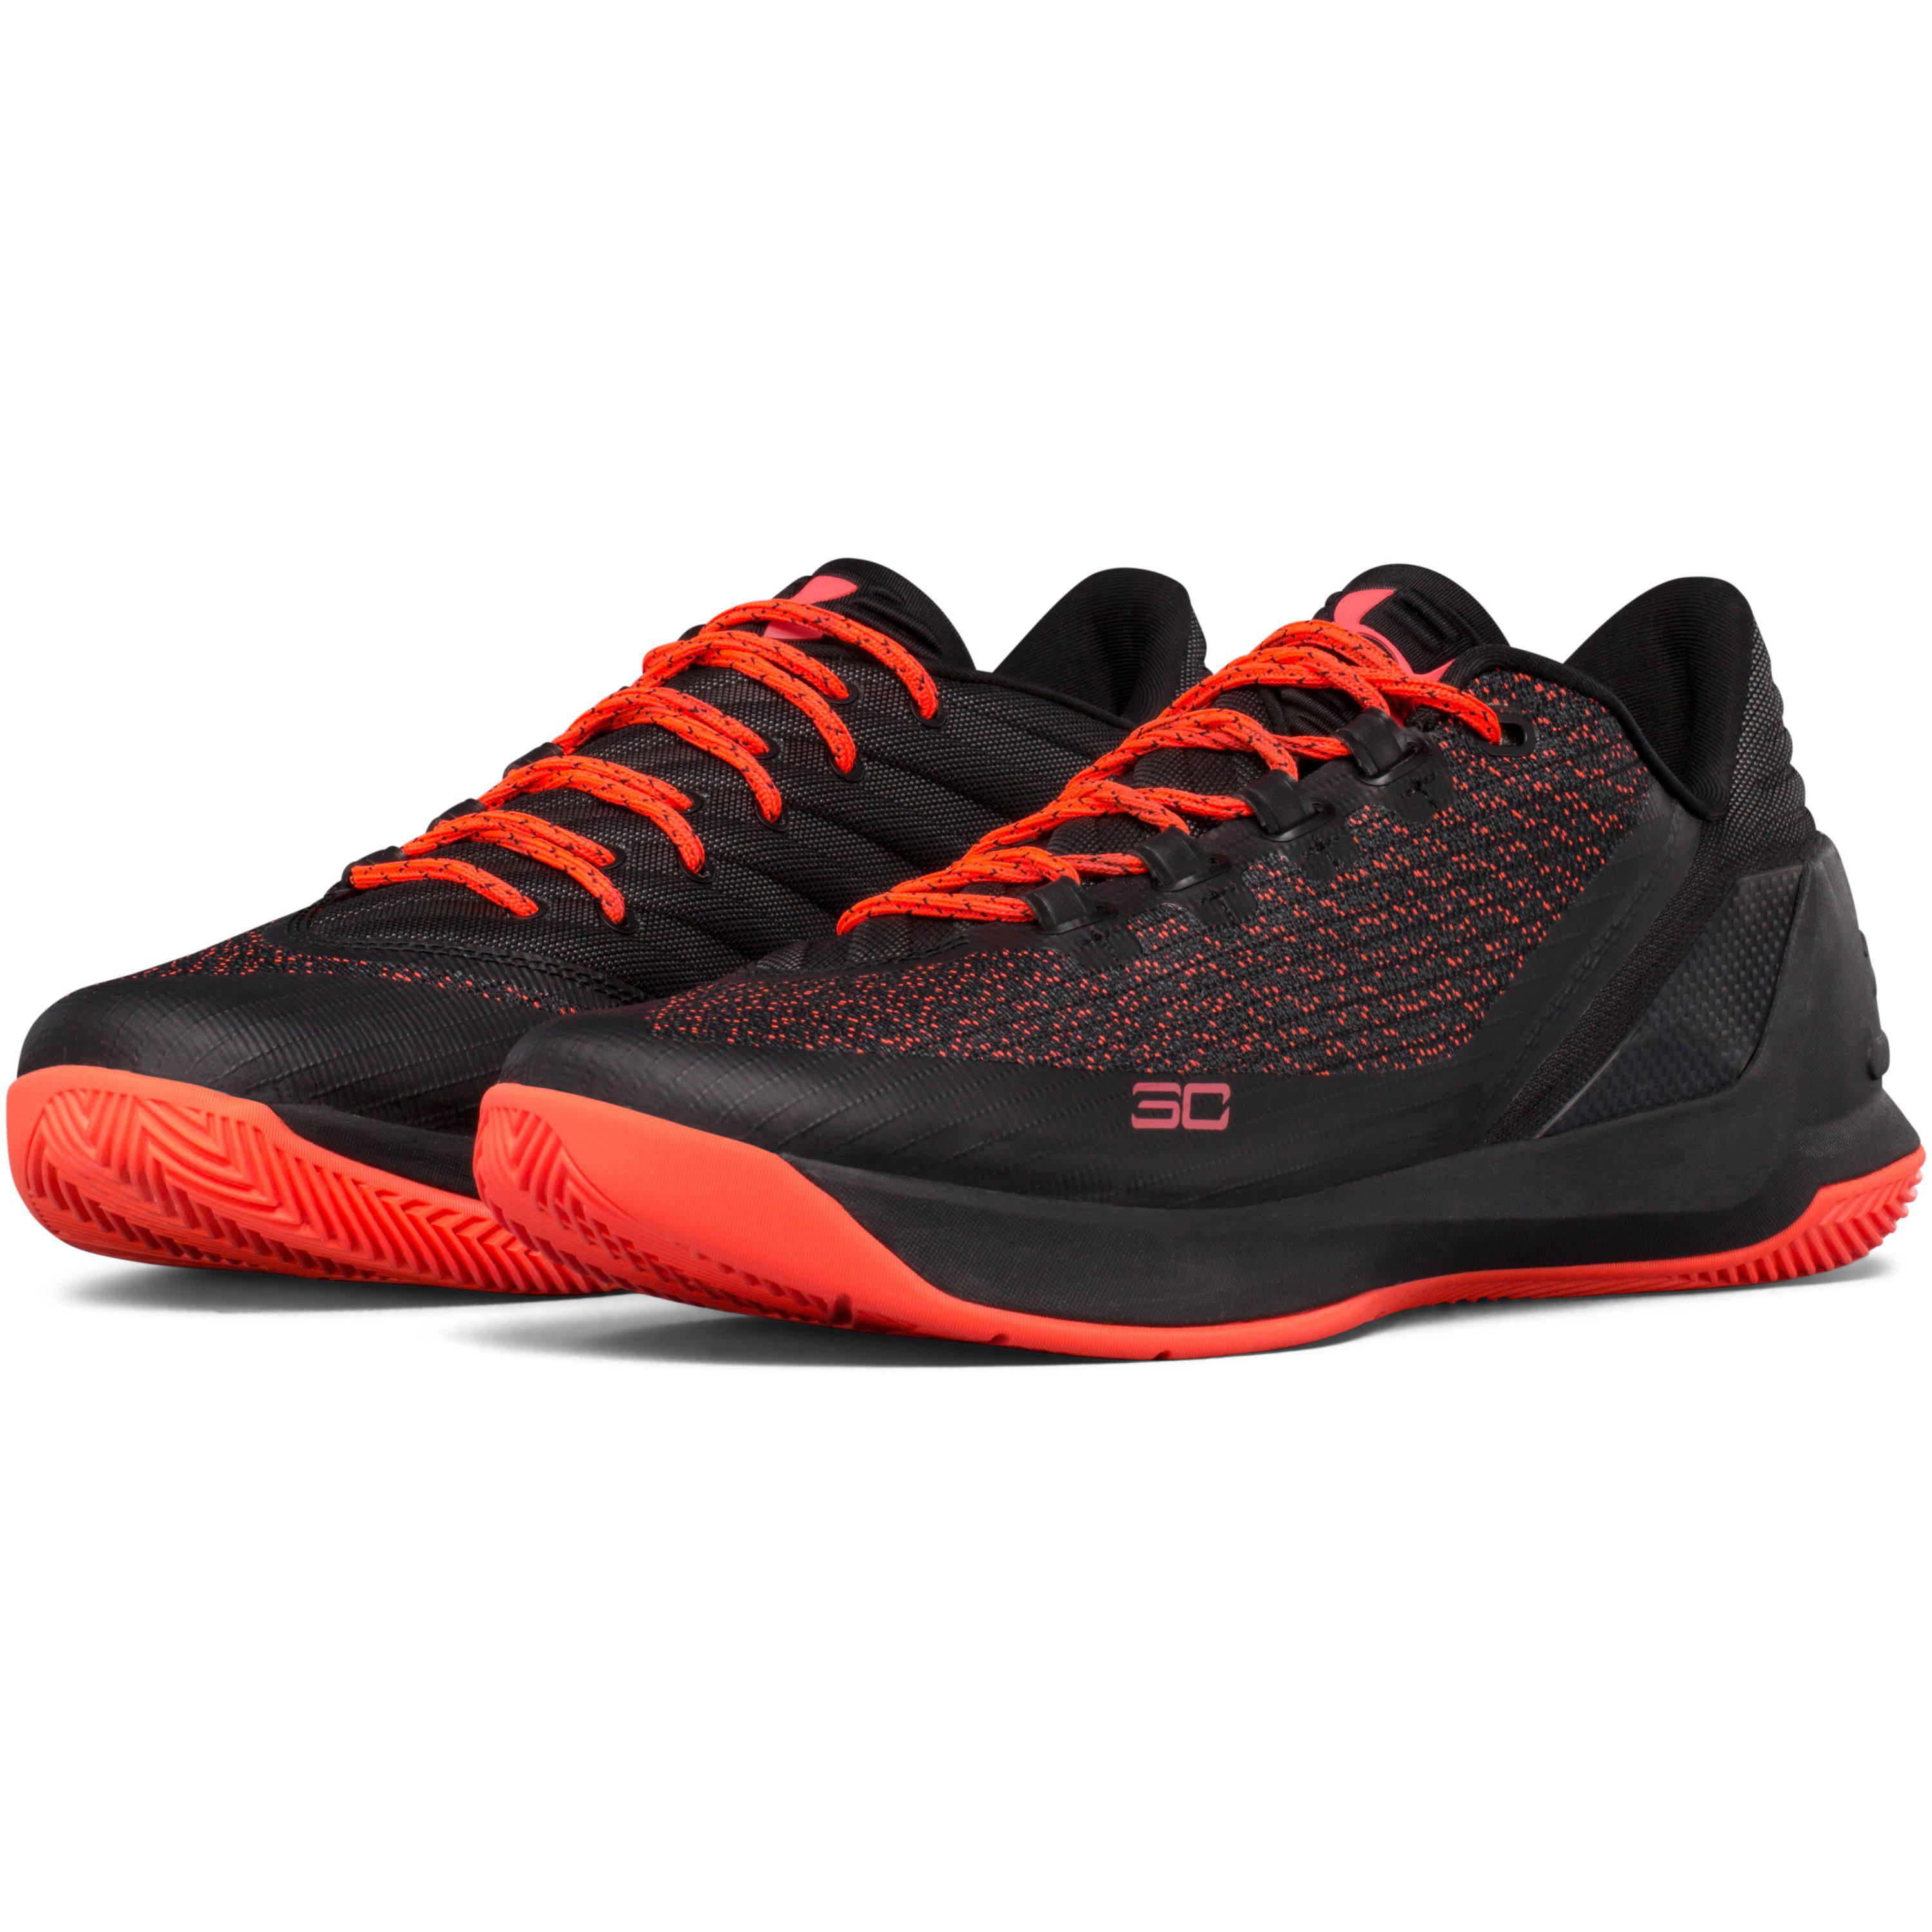 buy popular d9a26 11346 ... where can i buy lyst under armour mens ua curry 3 low basketball shoes  in red